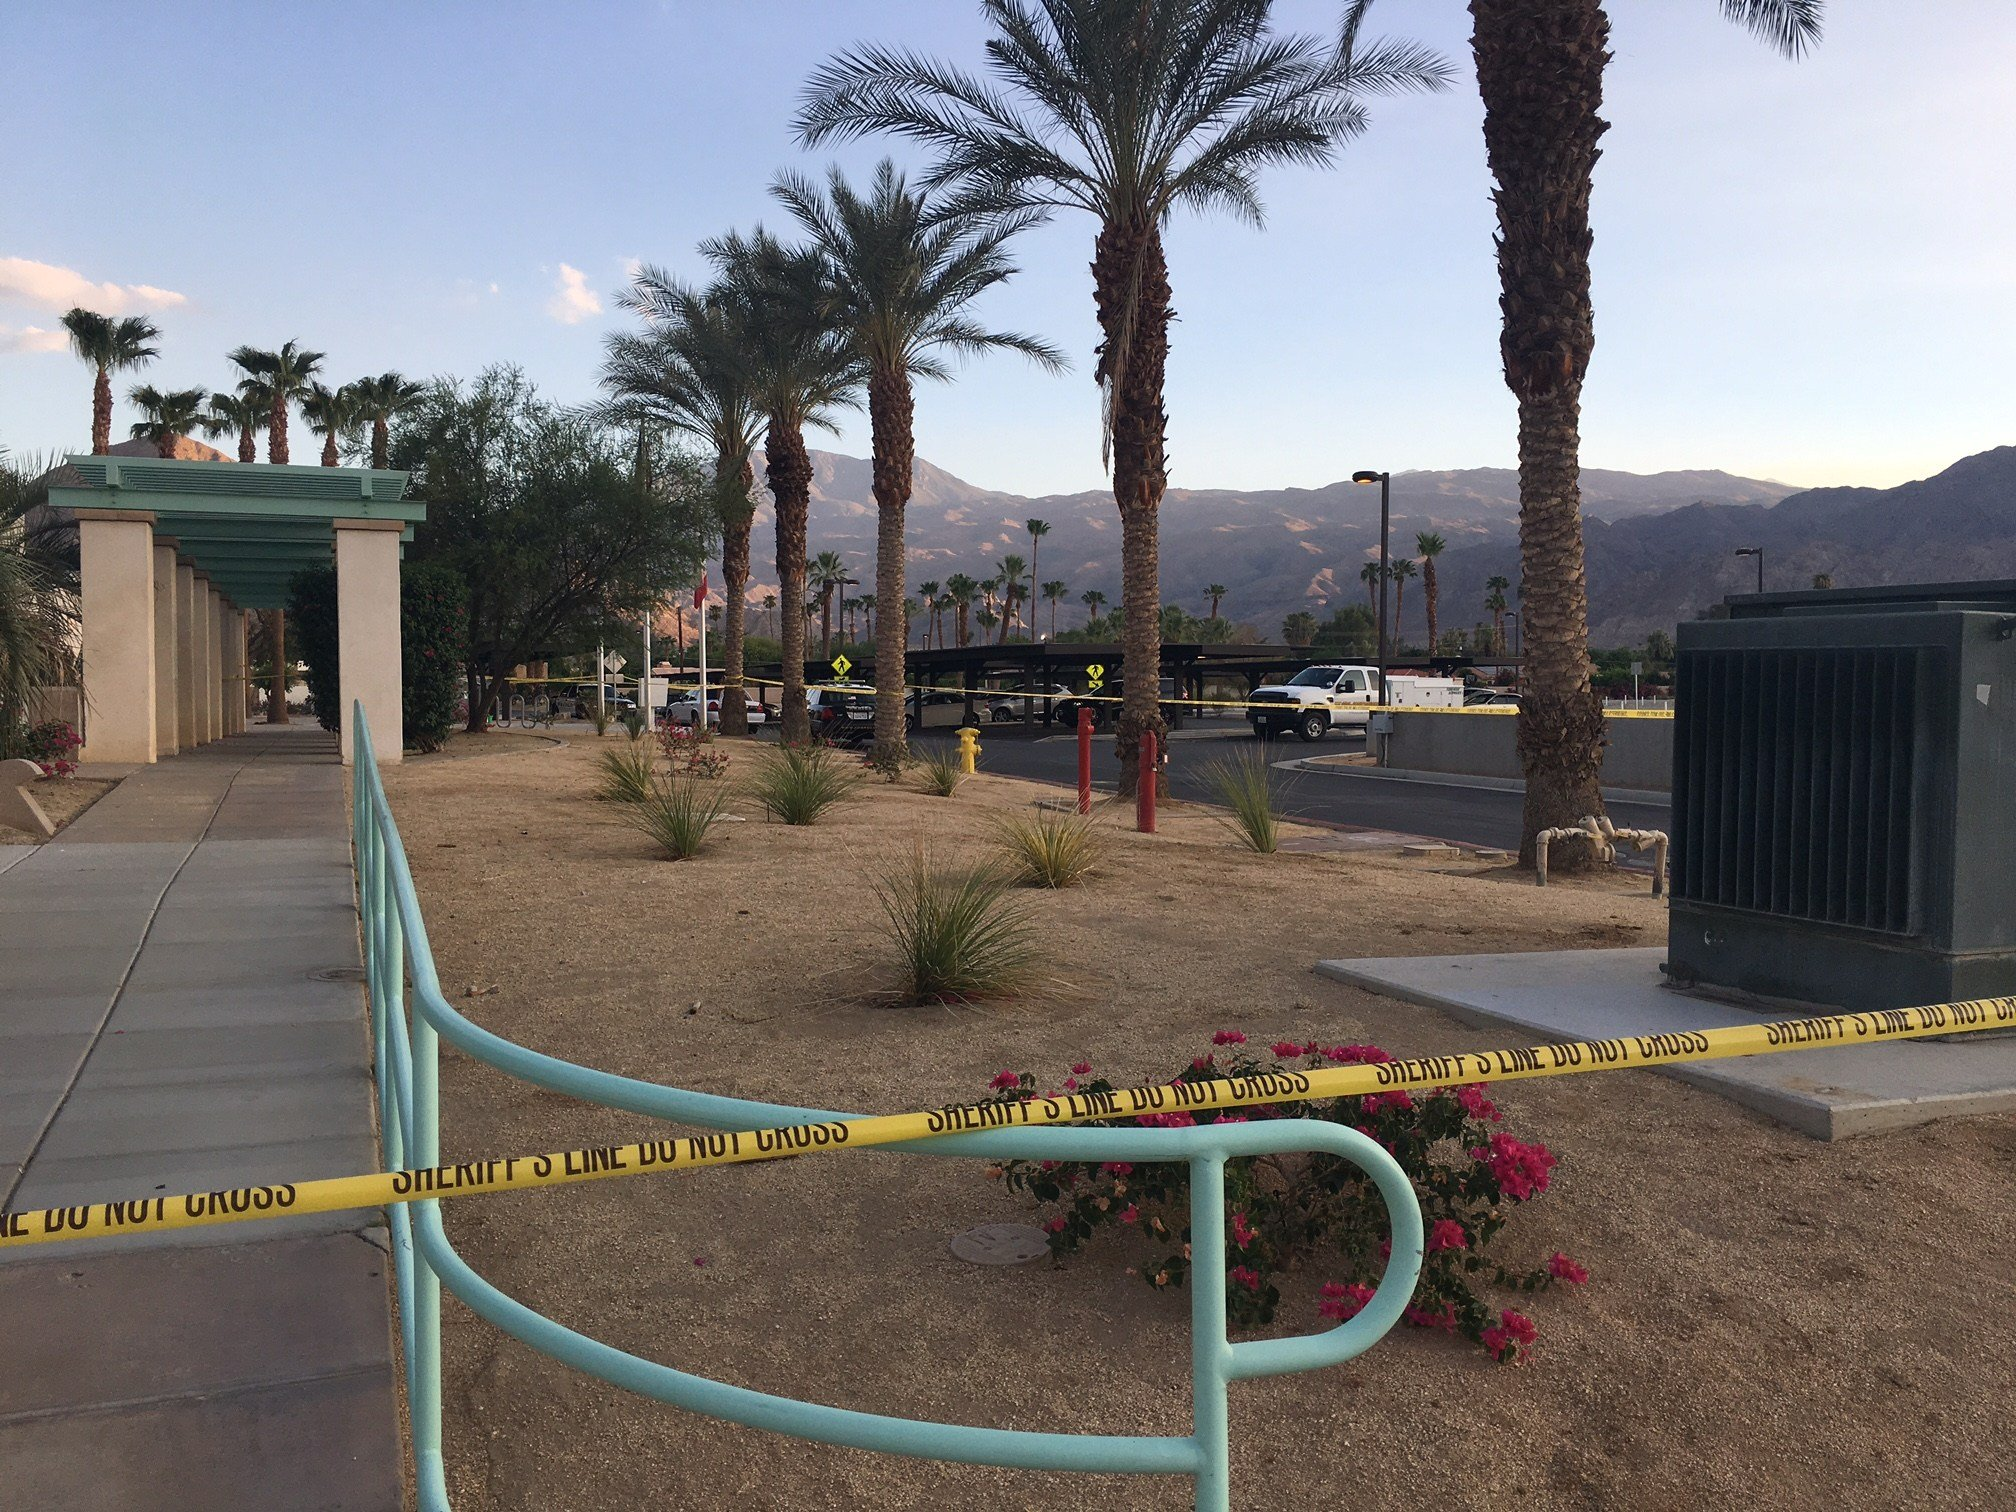 The La Quinta Library was put on lockdown immediatly following the incident.